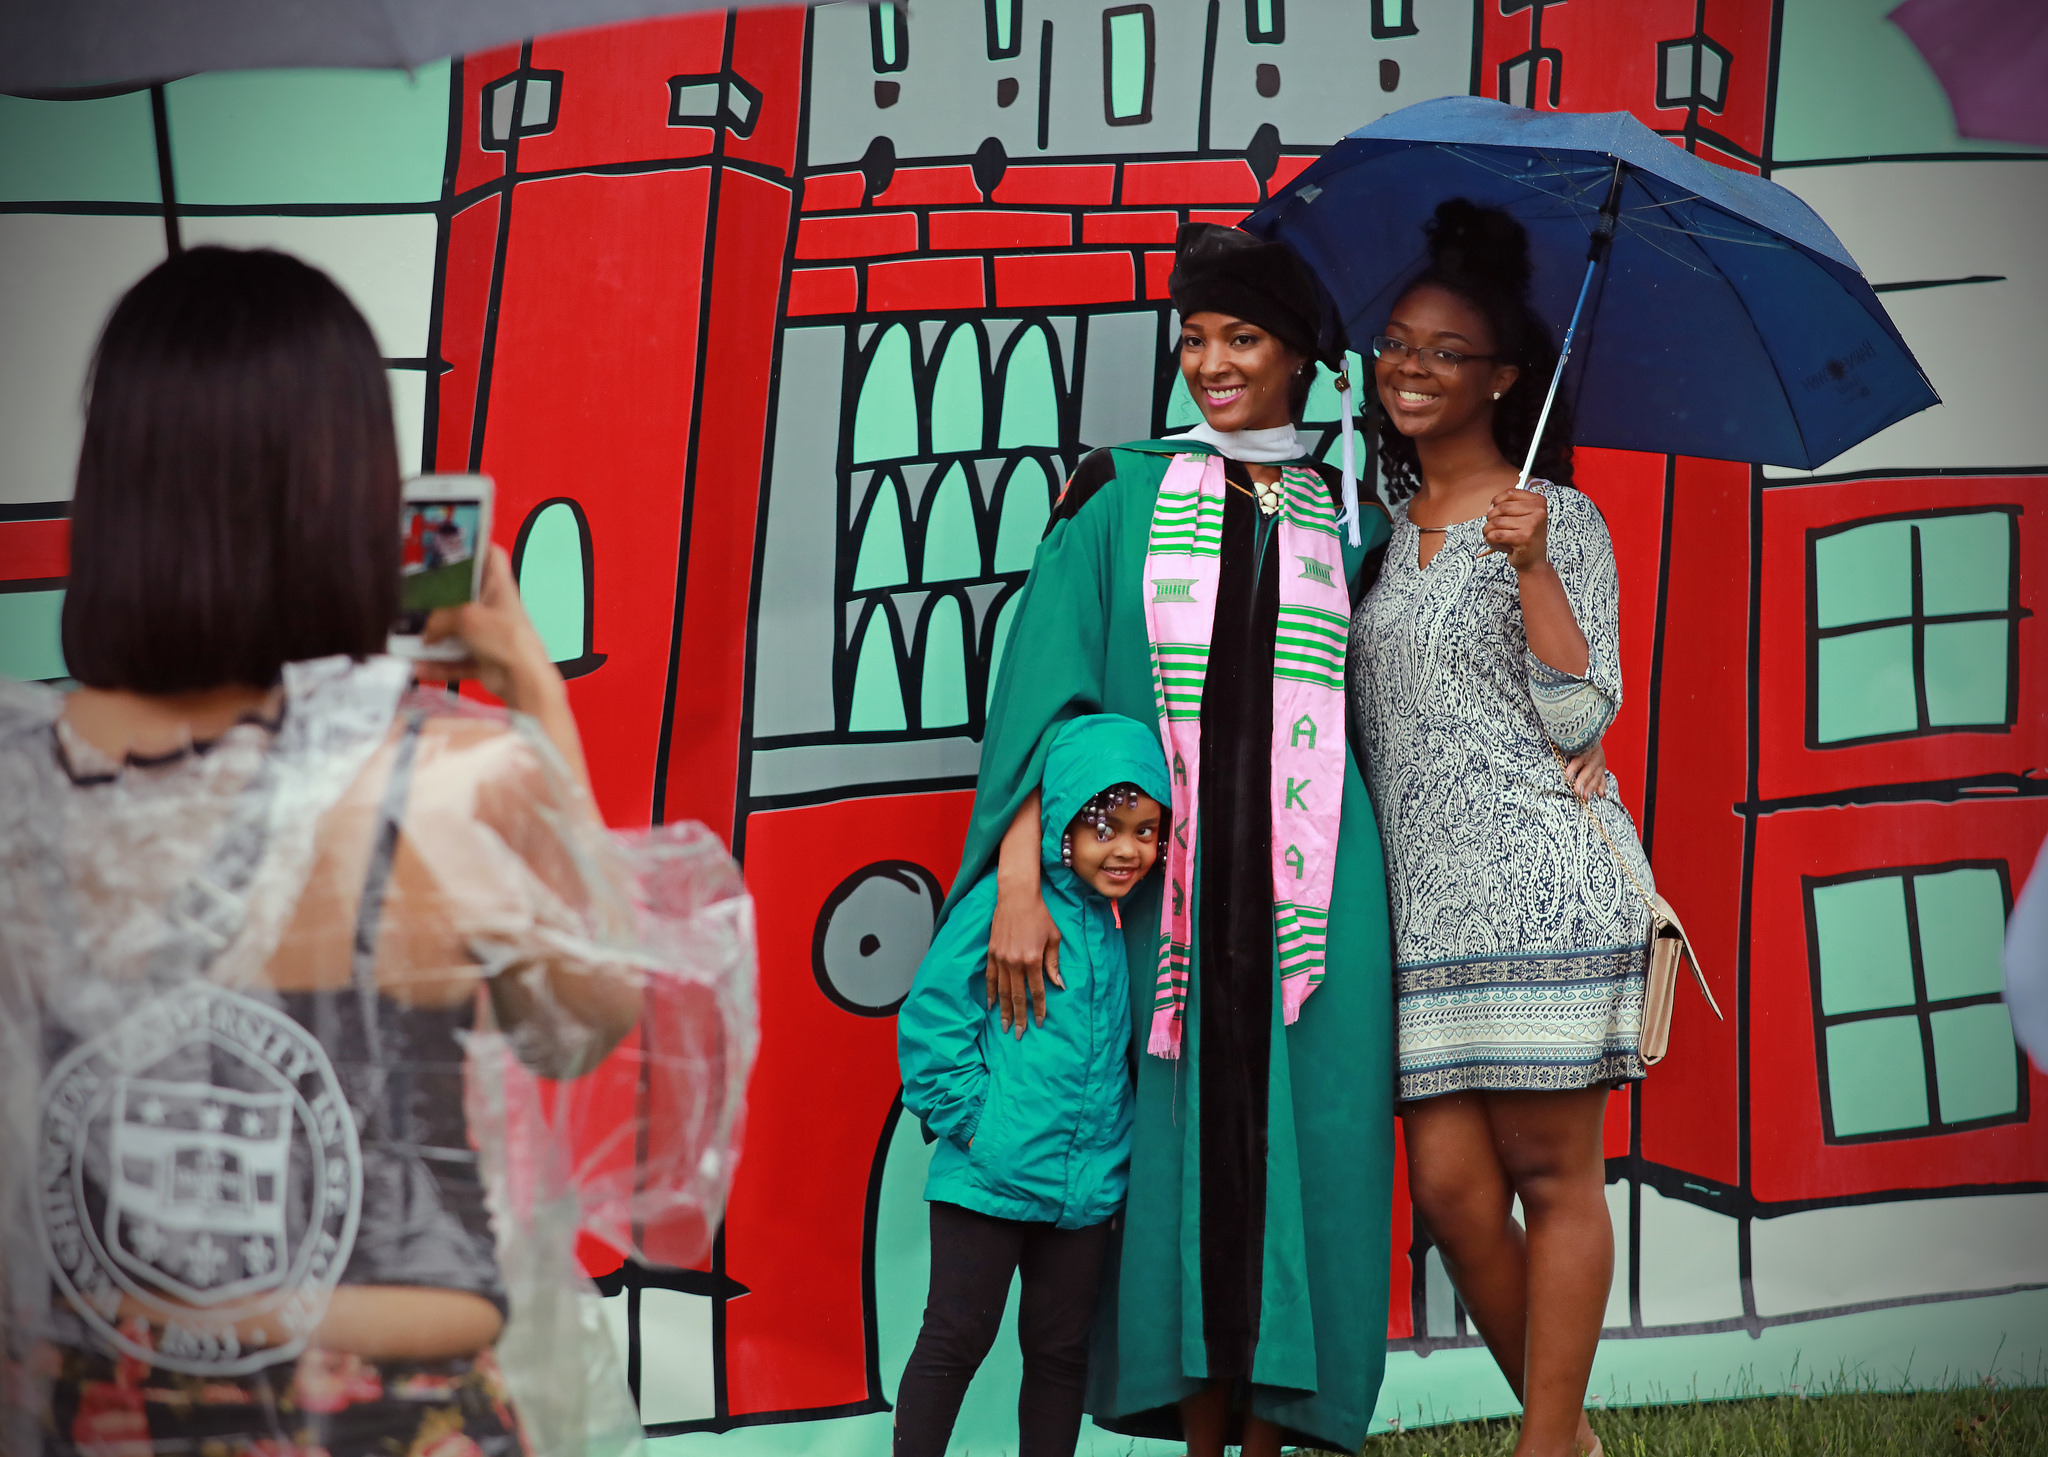 A college graduate, her parent, and young sibling stand in front of a backdrop of Brookings Hall at WashU